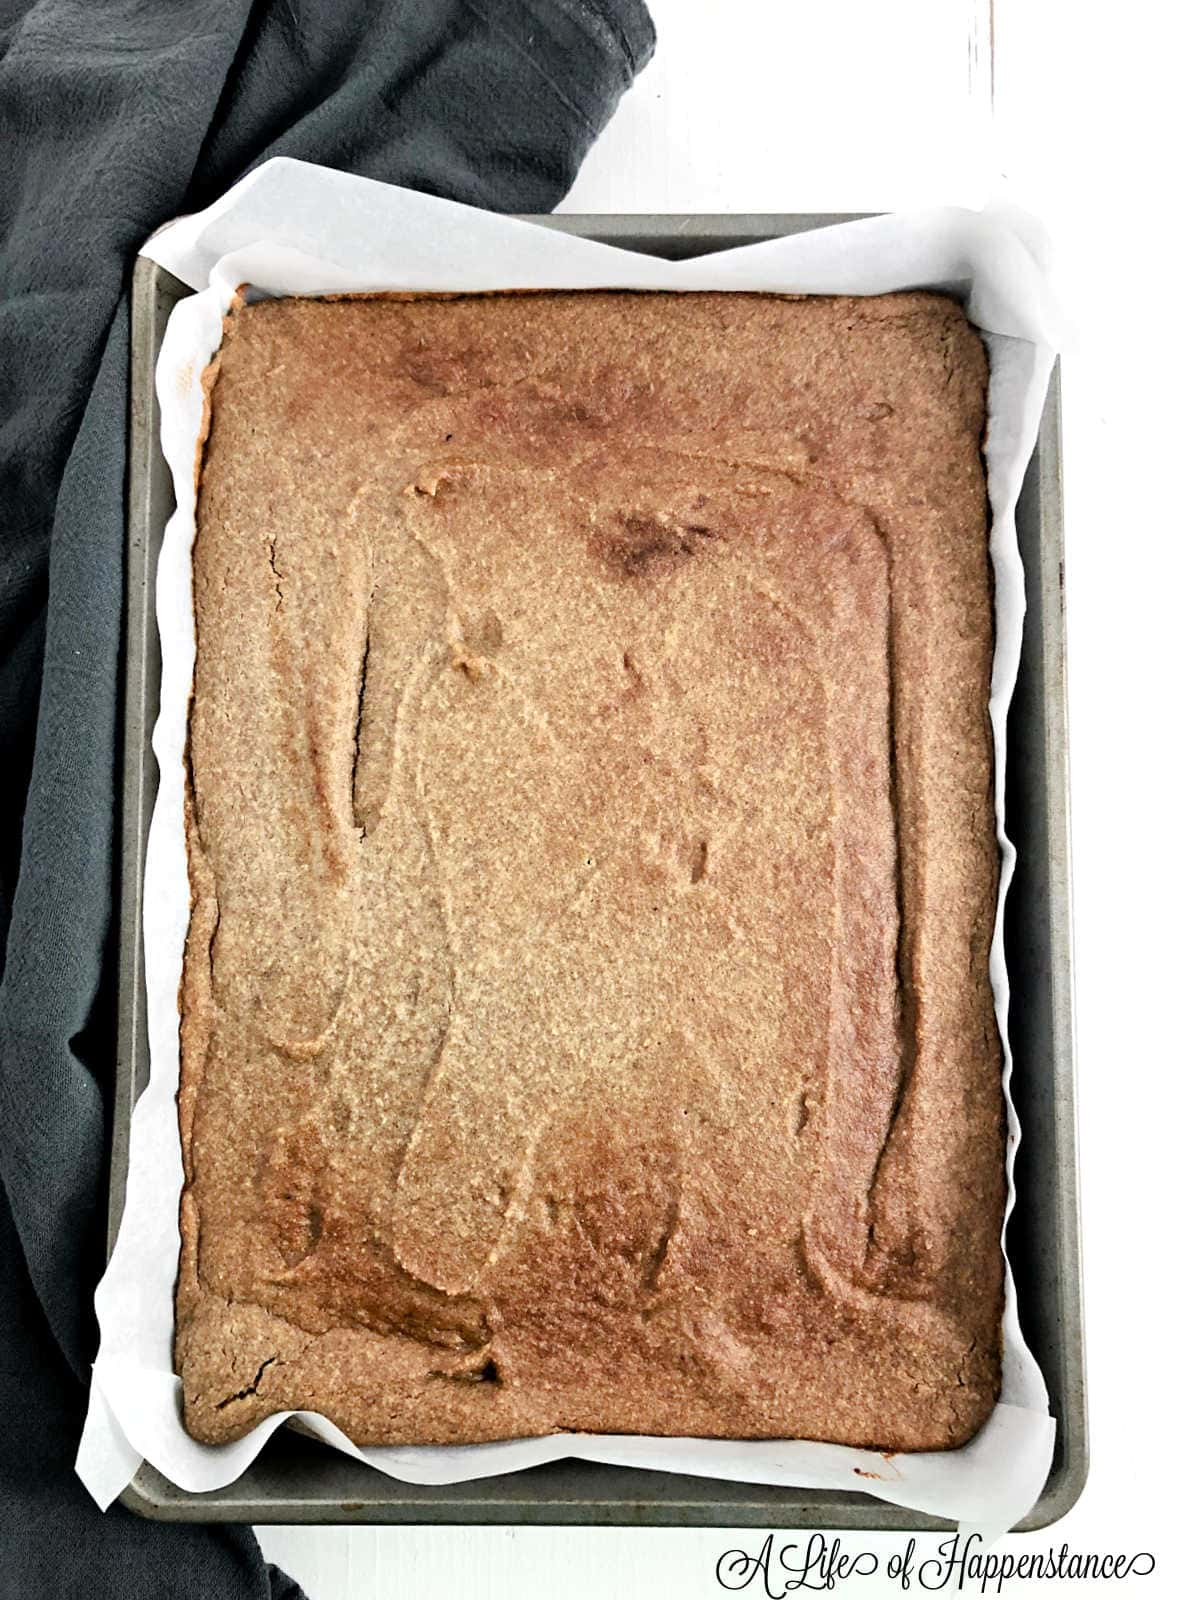 The baked banana cake cooling in the baking pan.